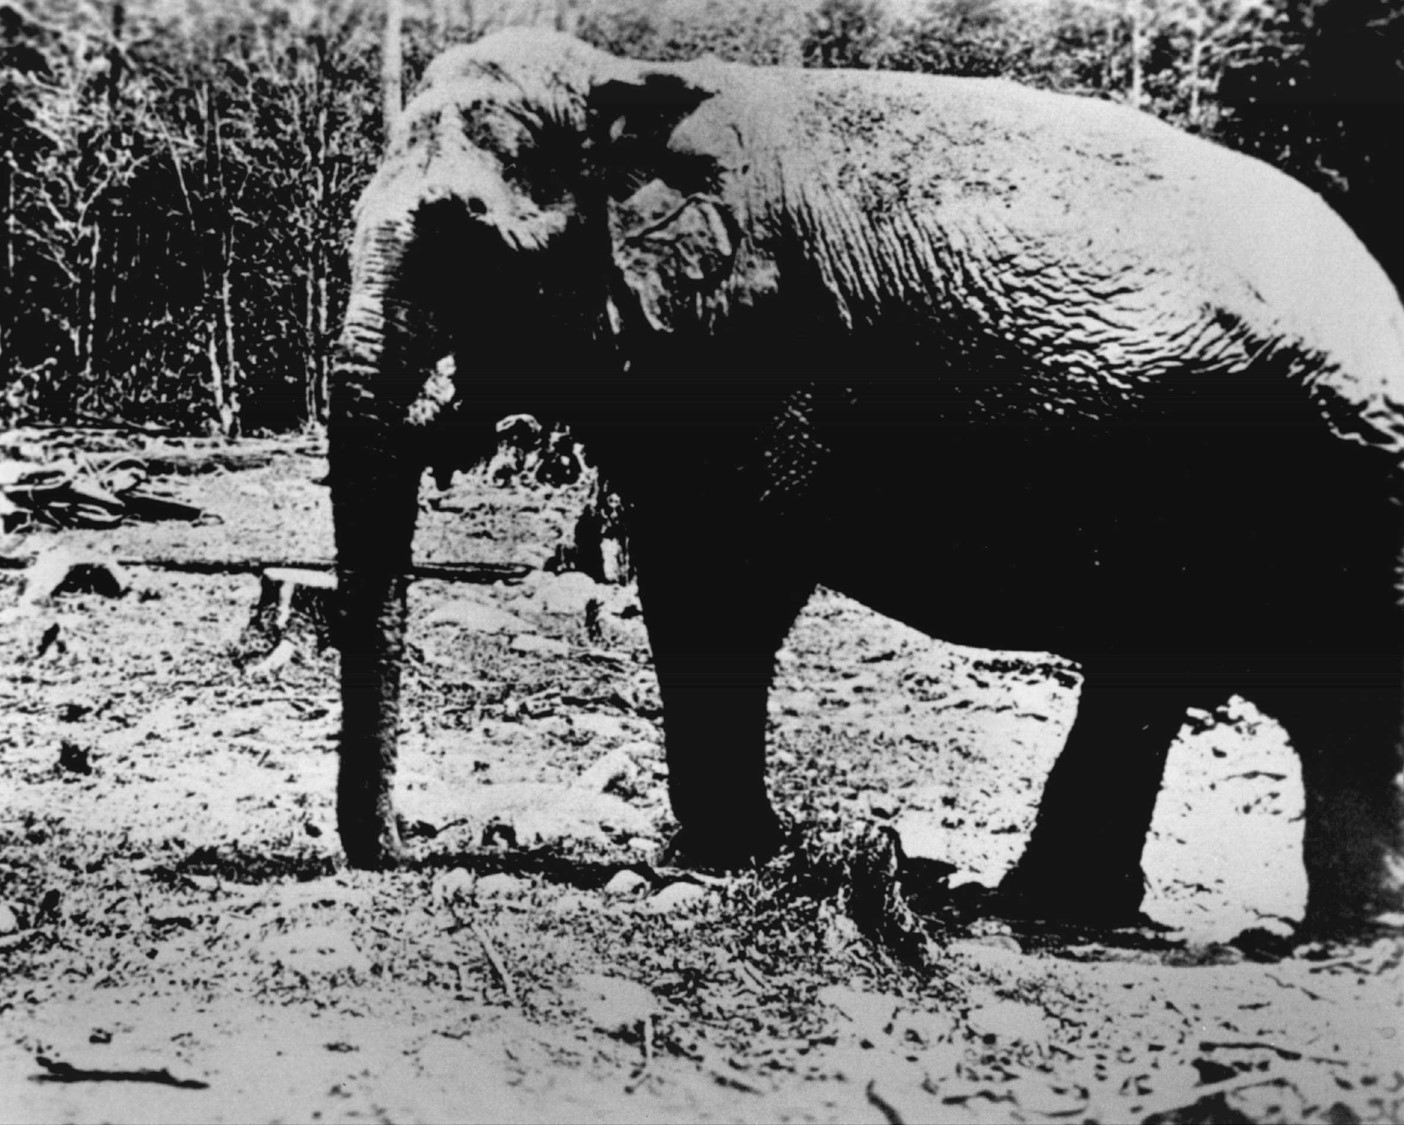 One of Main's elephants wanders the wreckage site confused and upset.